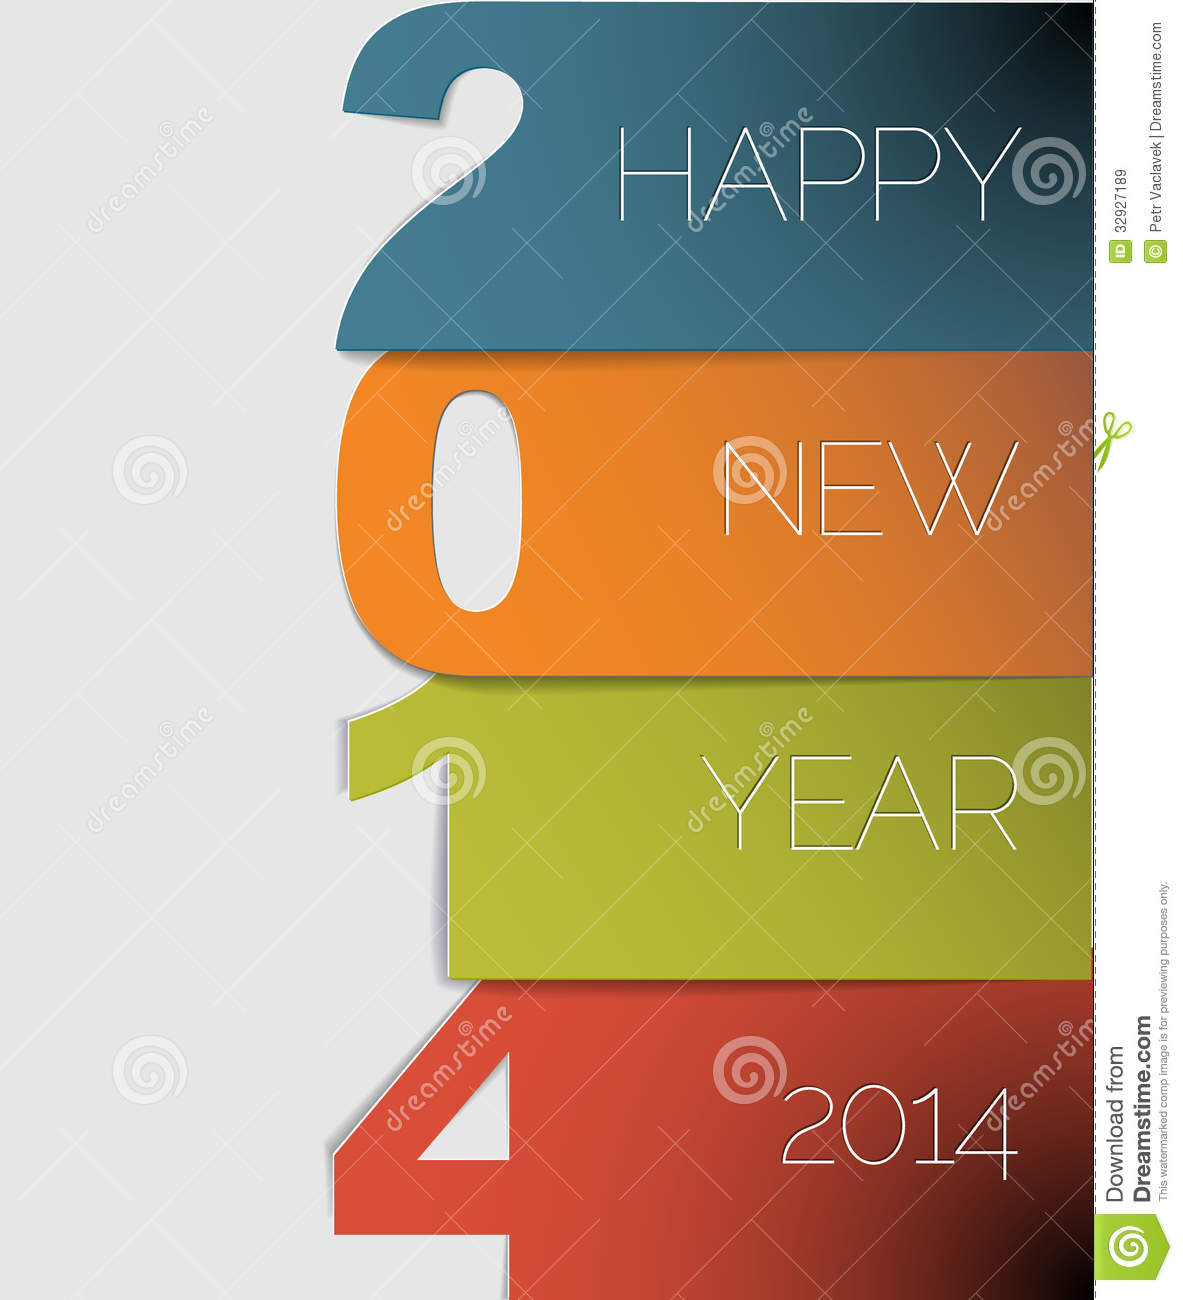 Happy new year 2014 vector card stock vector illustration of happy new year 2014 vector card kristyandbryce Images